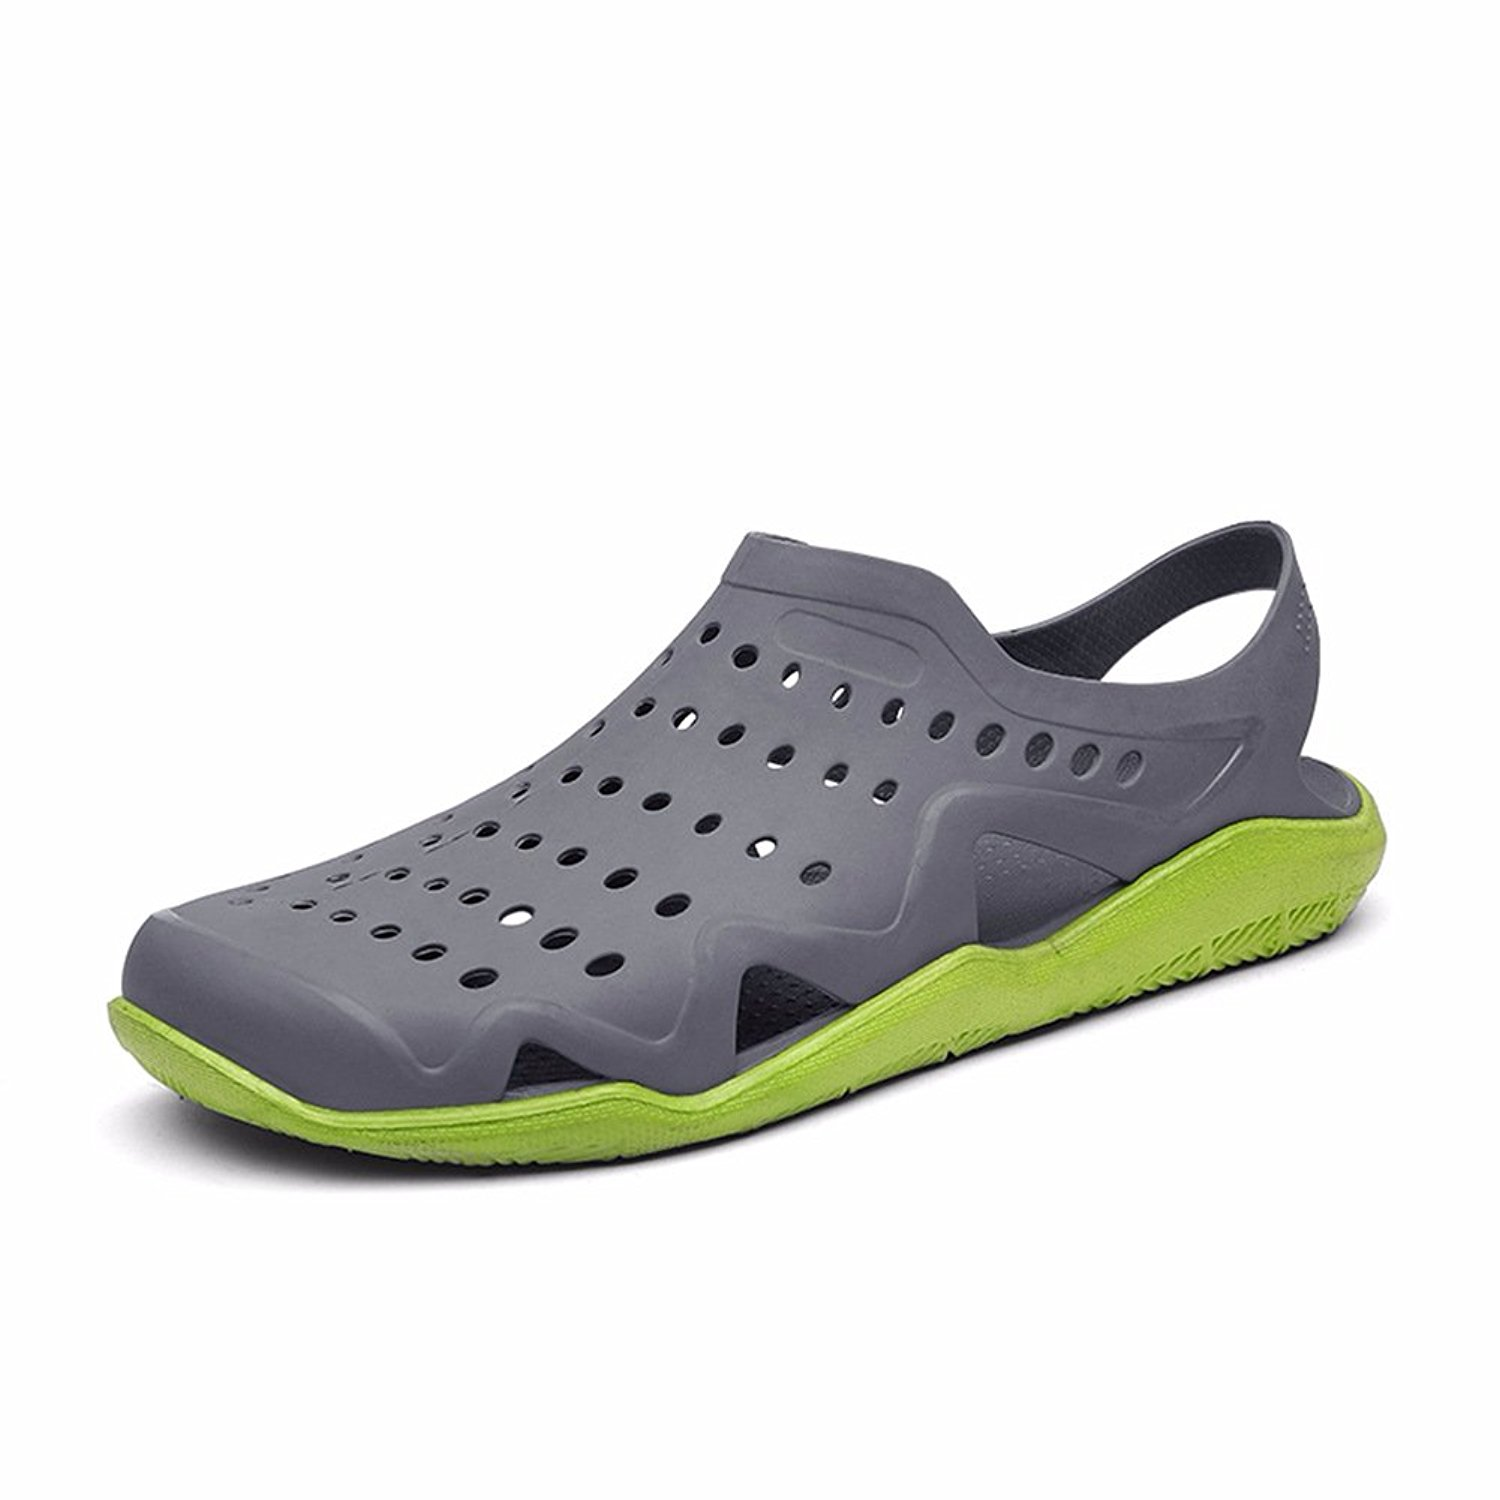 sunny holiday Mens Comfort Walking Water Shoes Pool Shower Saltwalter Sandals Outdoor Beach Aqua Walking Anti-Slip Clogs Shoes Grey/Green EU41